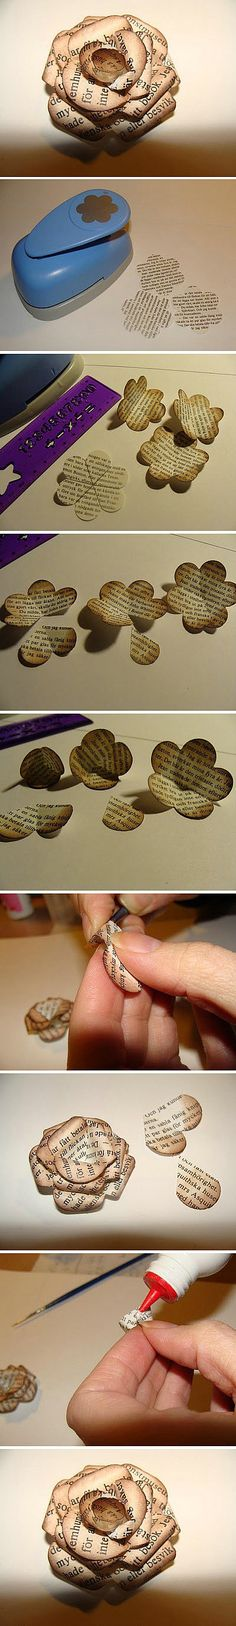 Paper flower made from the pages of a book